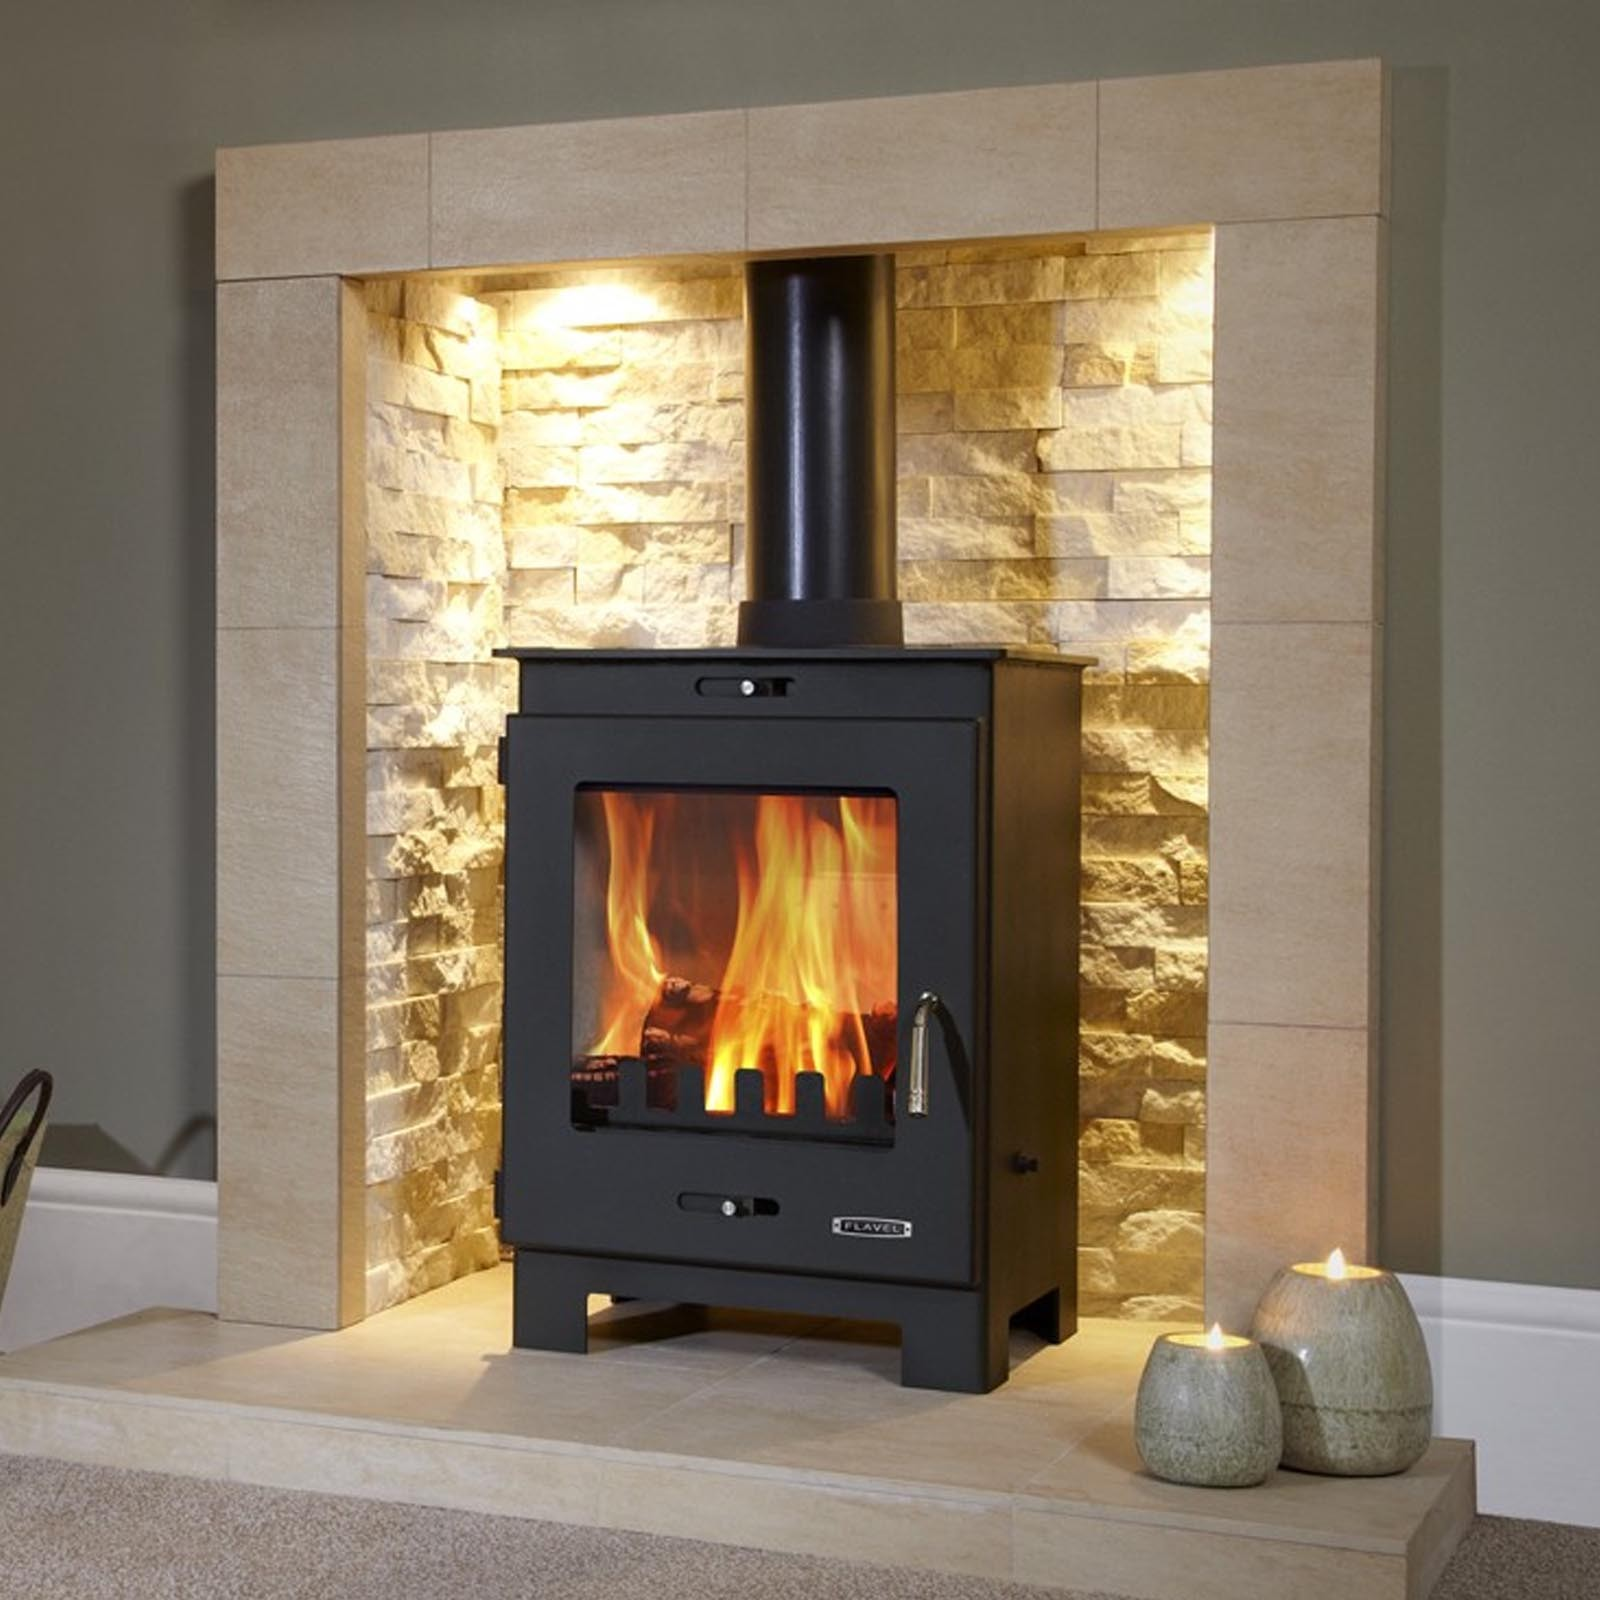 fireplaces uk 28 images uk lowest prices gb mantels. Black Bedroom Furniture Sets. Home Design Ideas